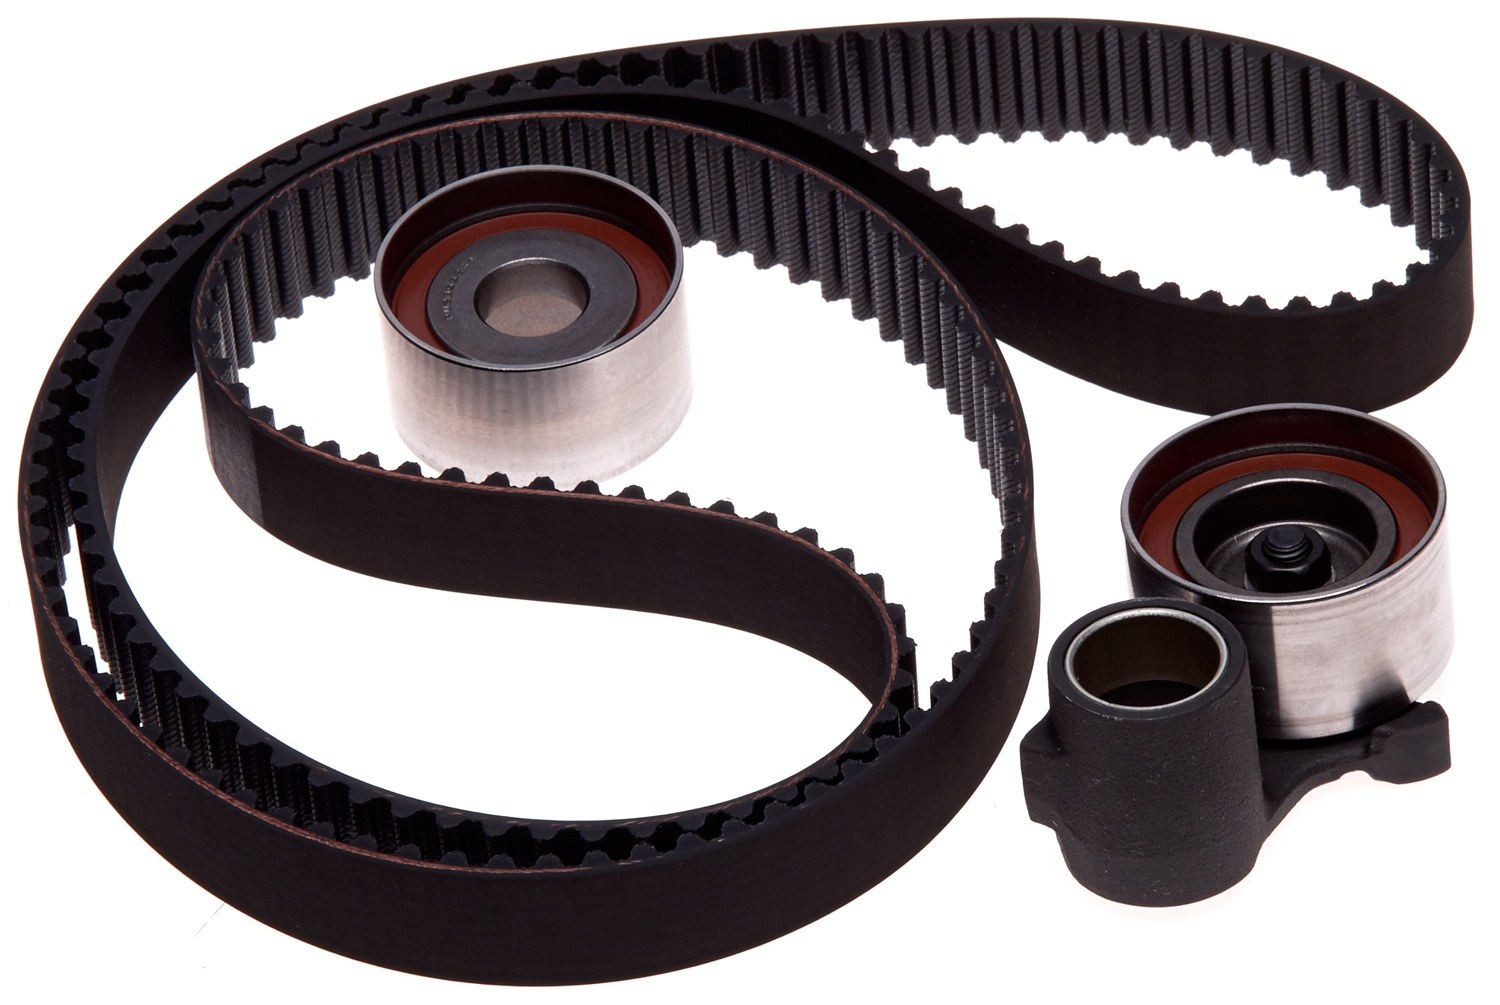 ACDELCO PROFESSIONAL - Timing Belt Component Kit - DCC TCK286